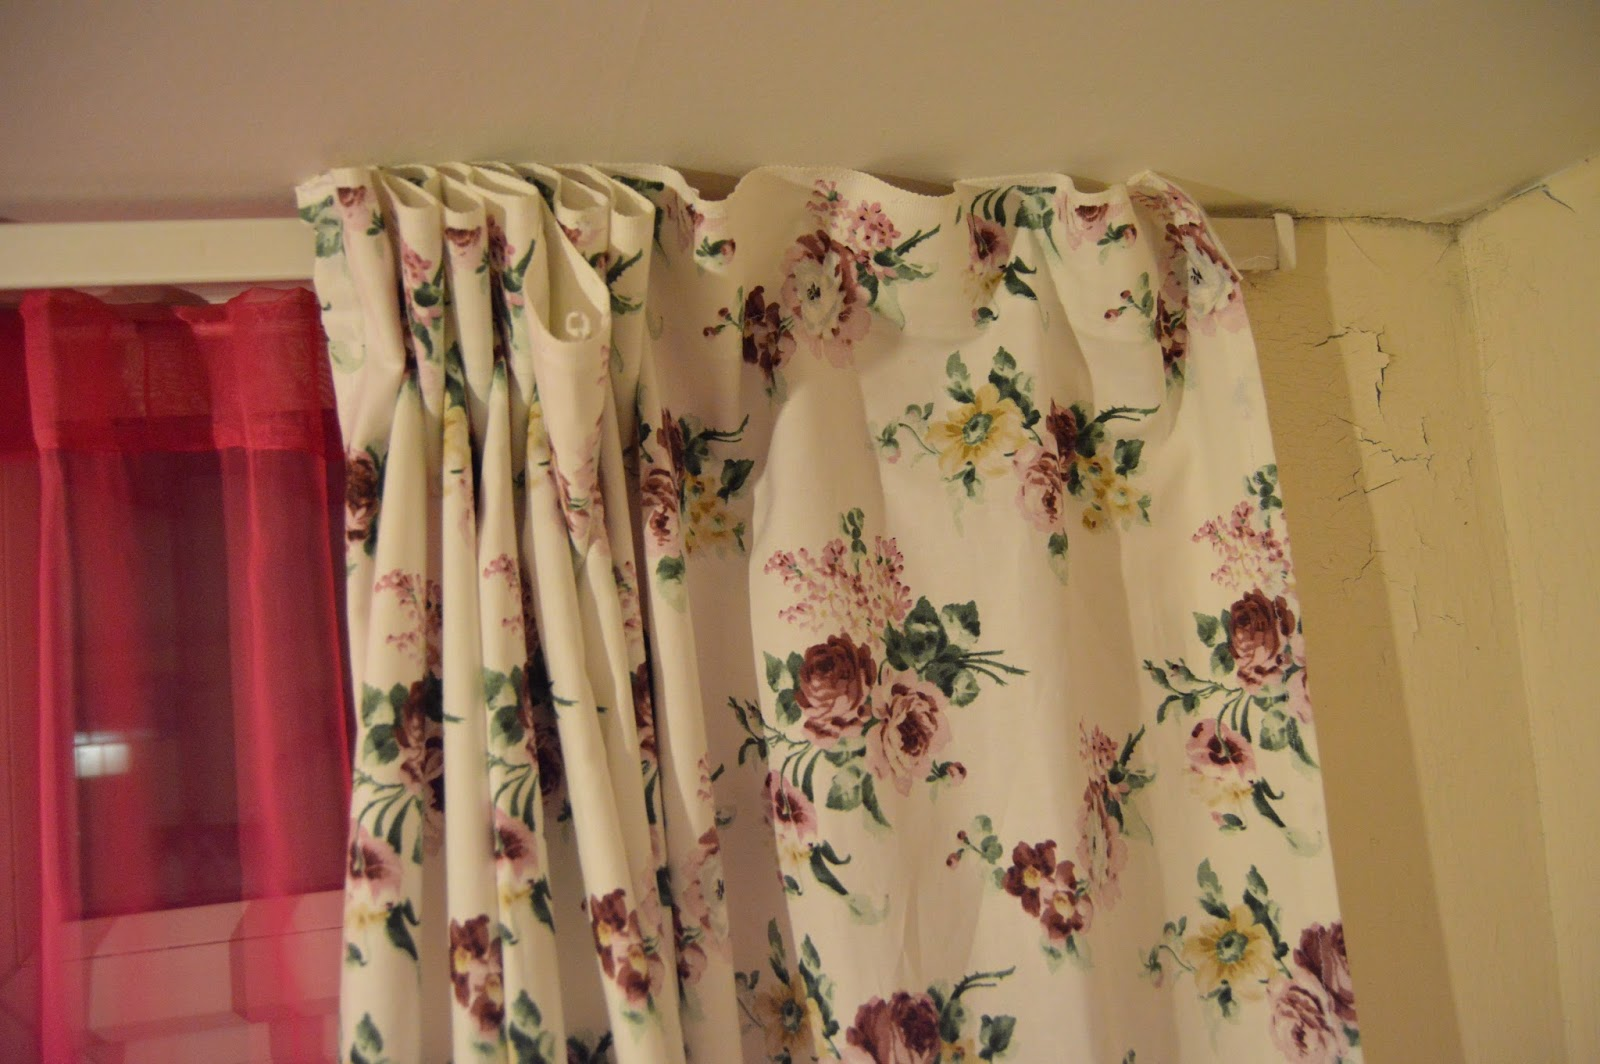 D.I.Y | How To Make Your Own Curtains | Ikea Fabric | DISCOVERING ...